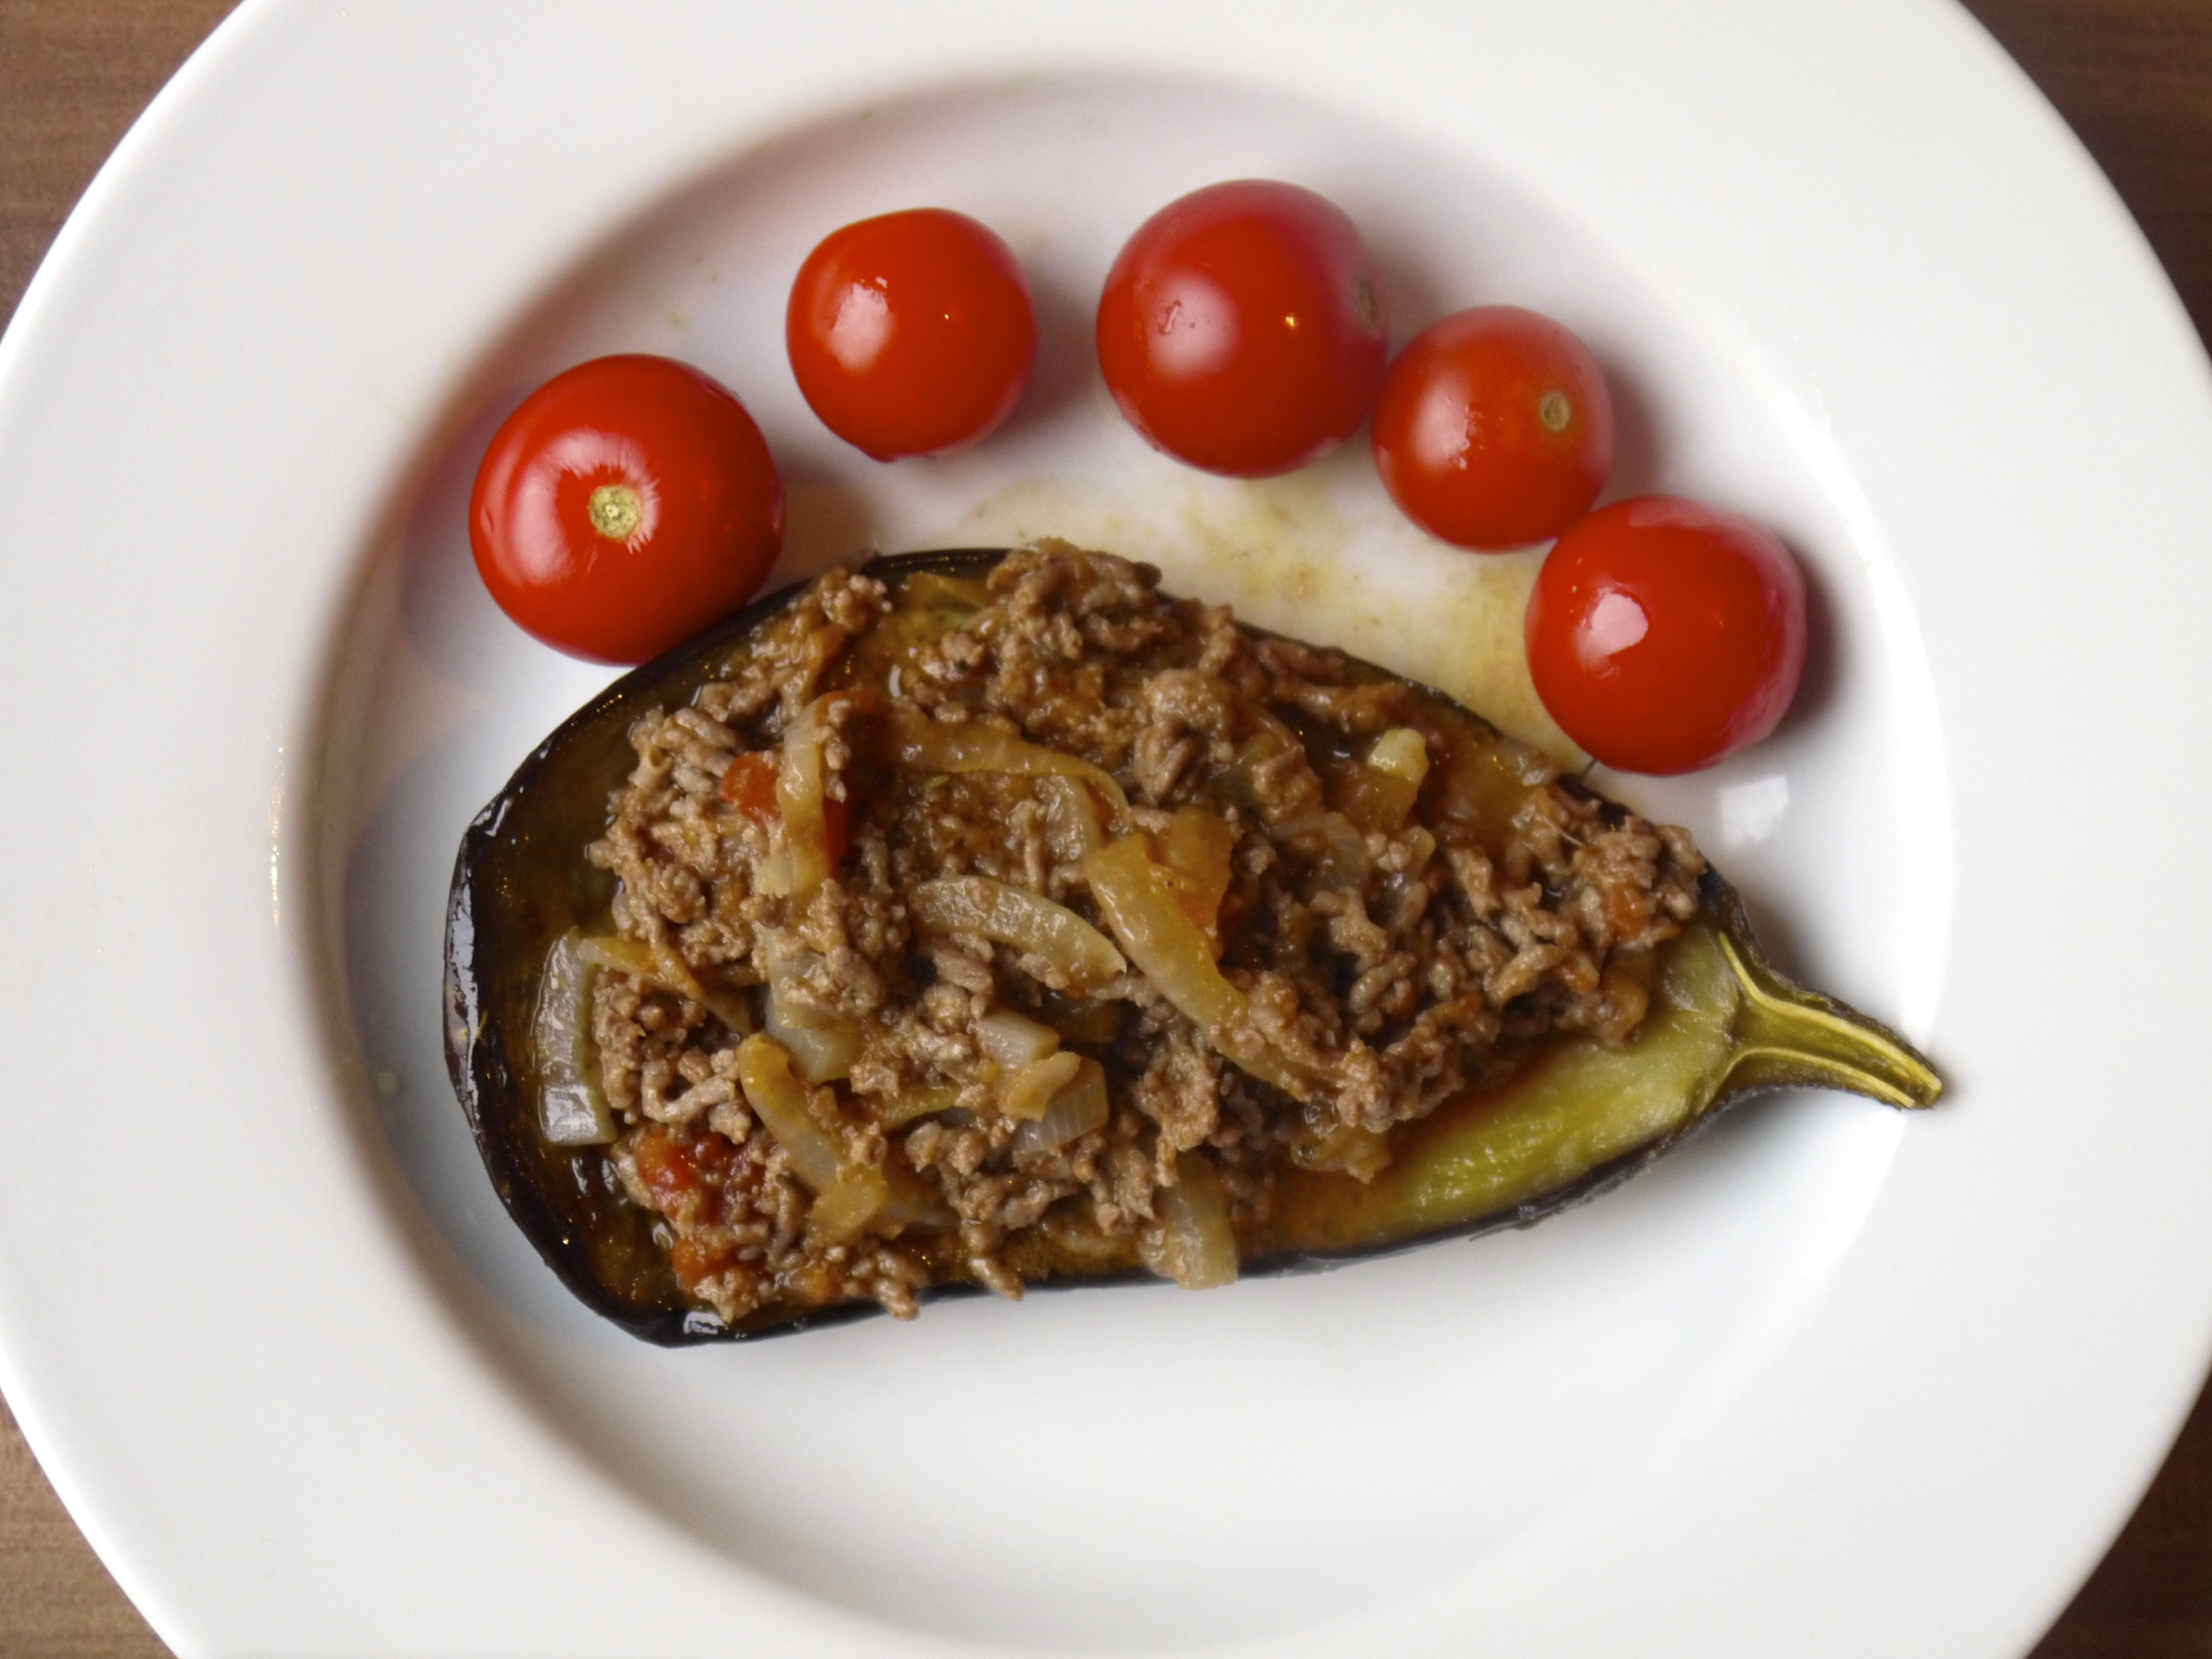 Simple Stuffed Eggplant With Ground Beef